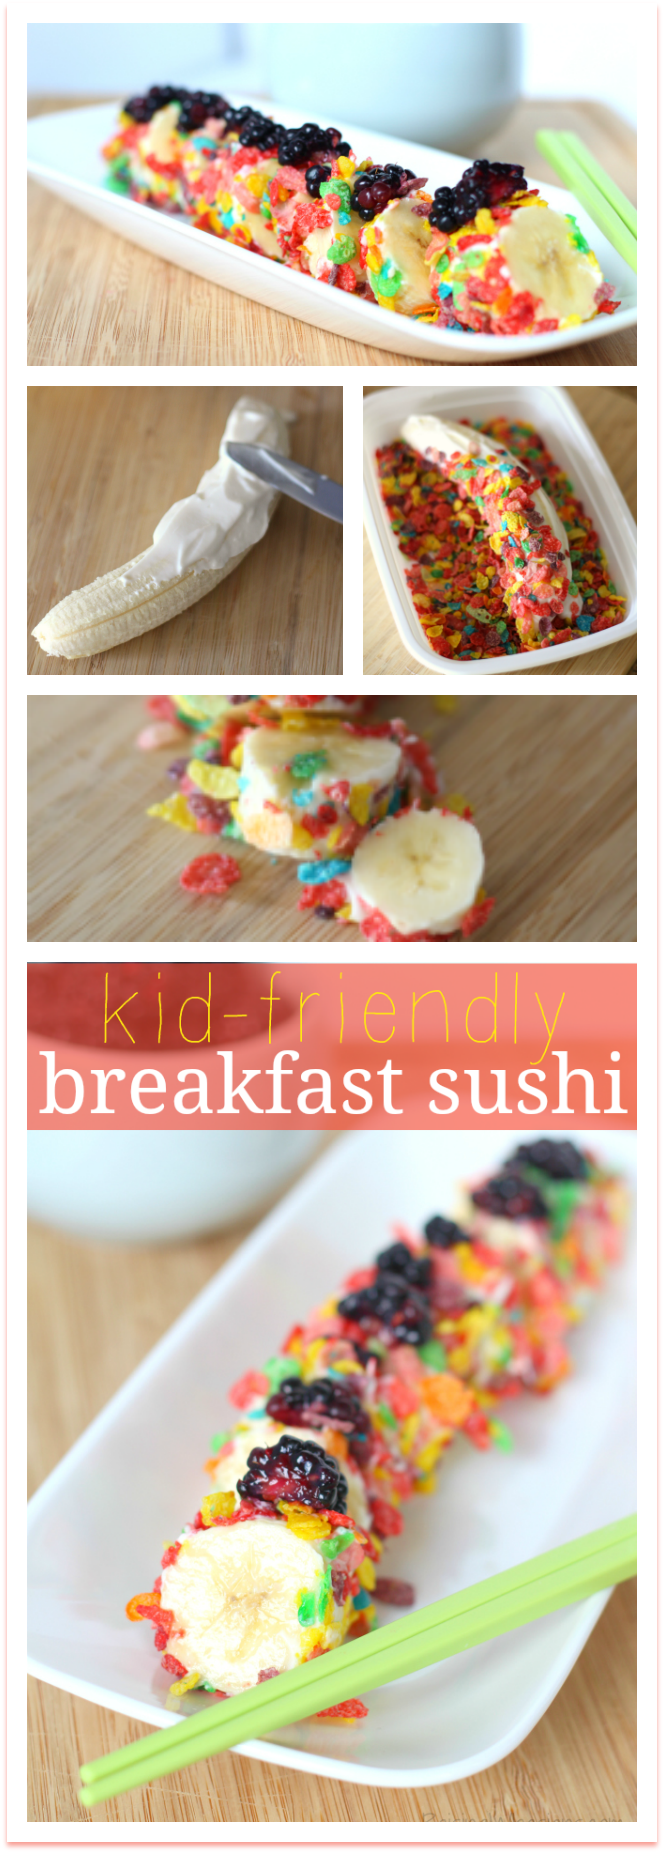 Kids breakfast sushi pinterest